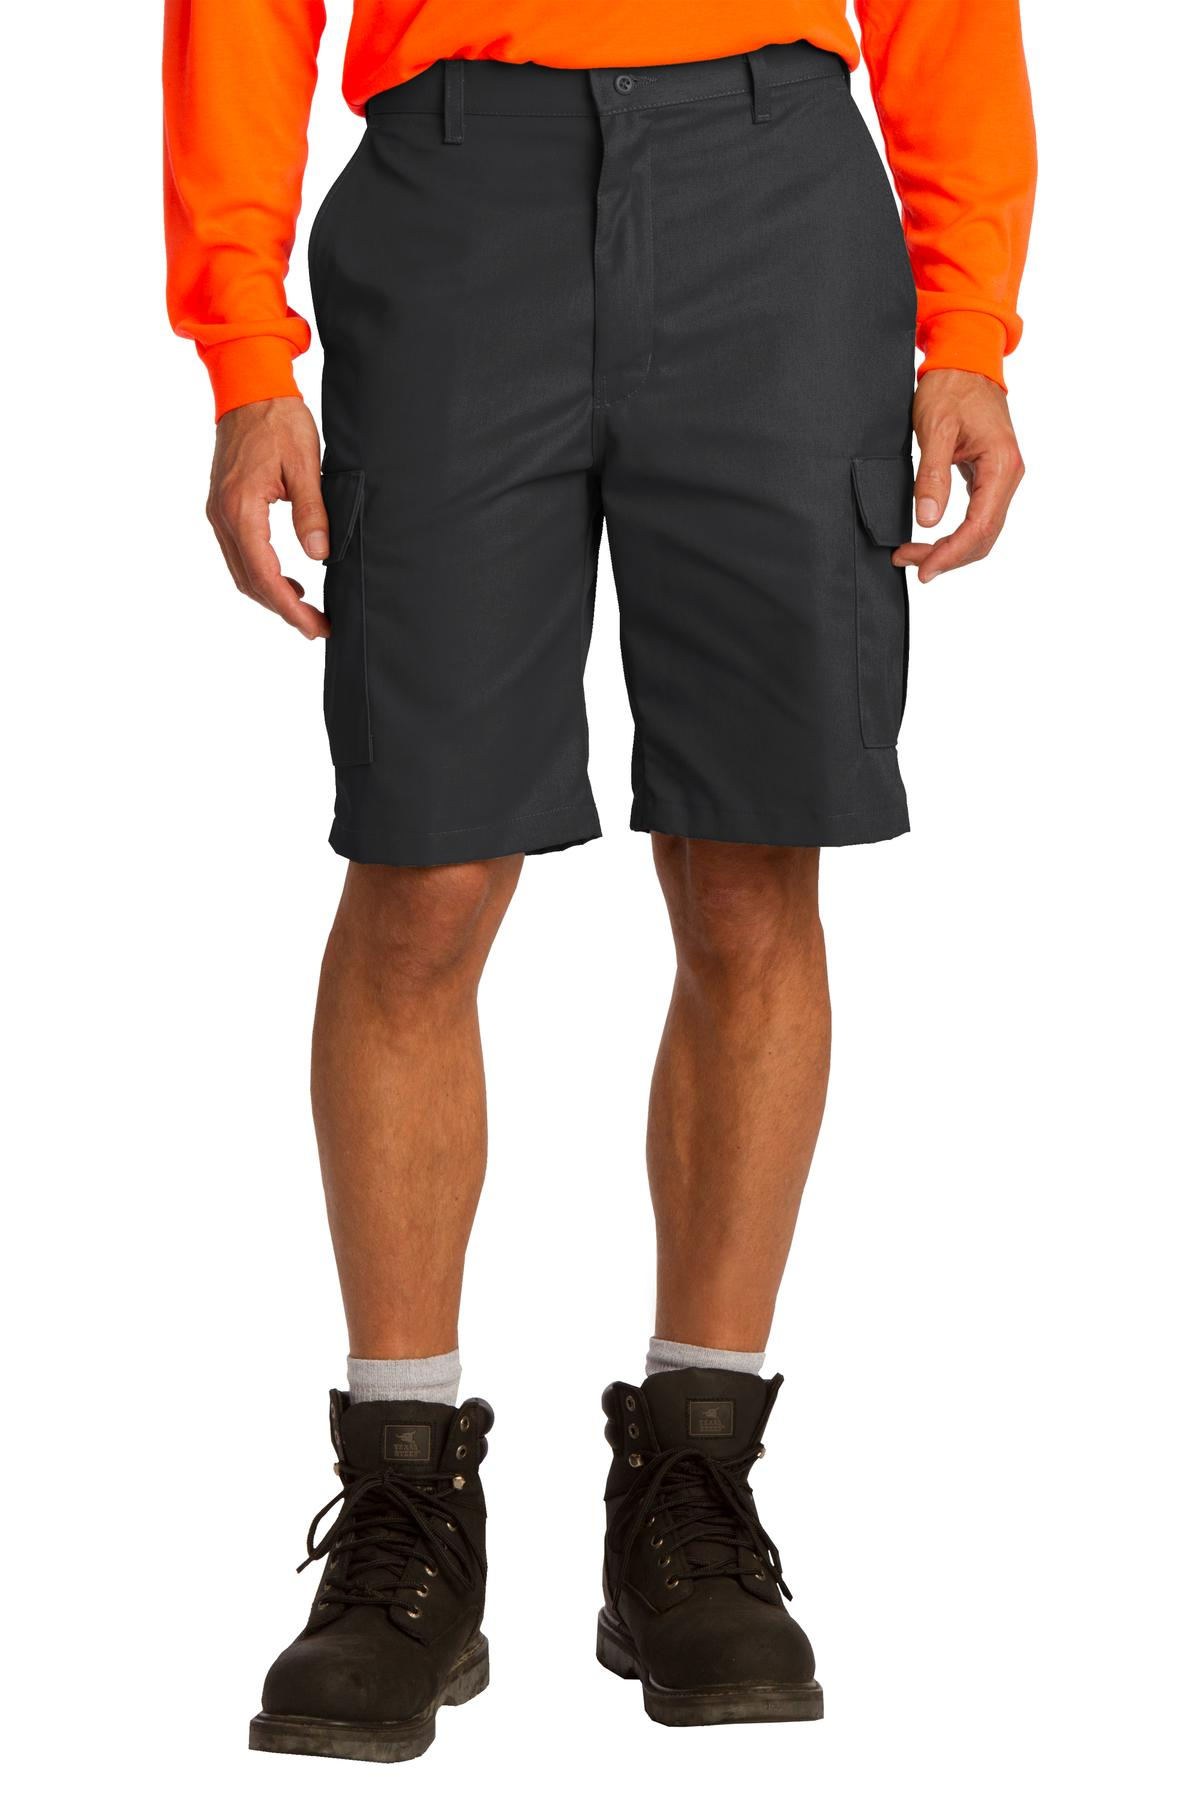 Red Kap ®  Industrial Cargo Short. PT66 - Black